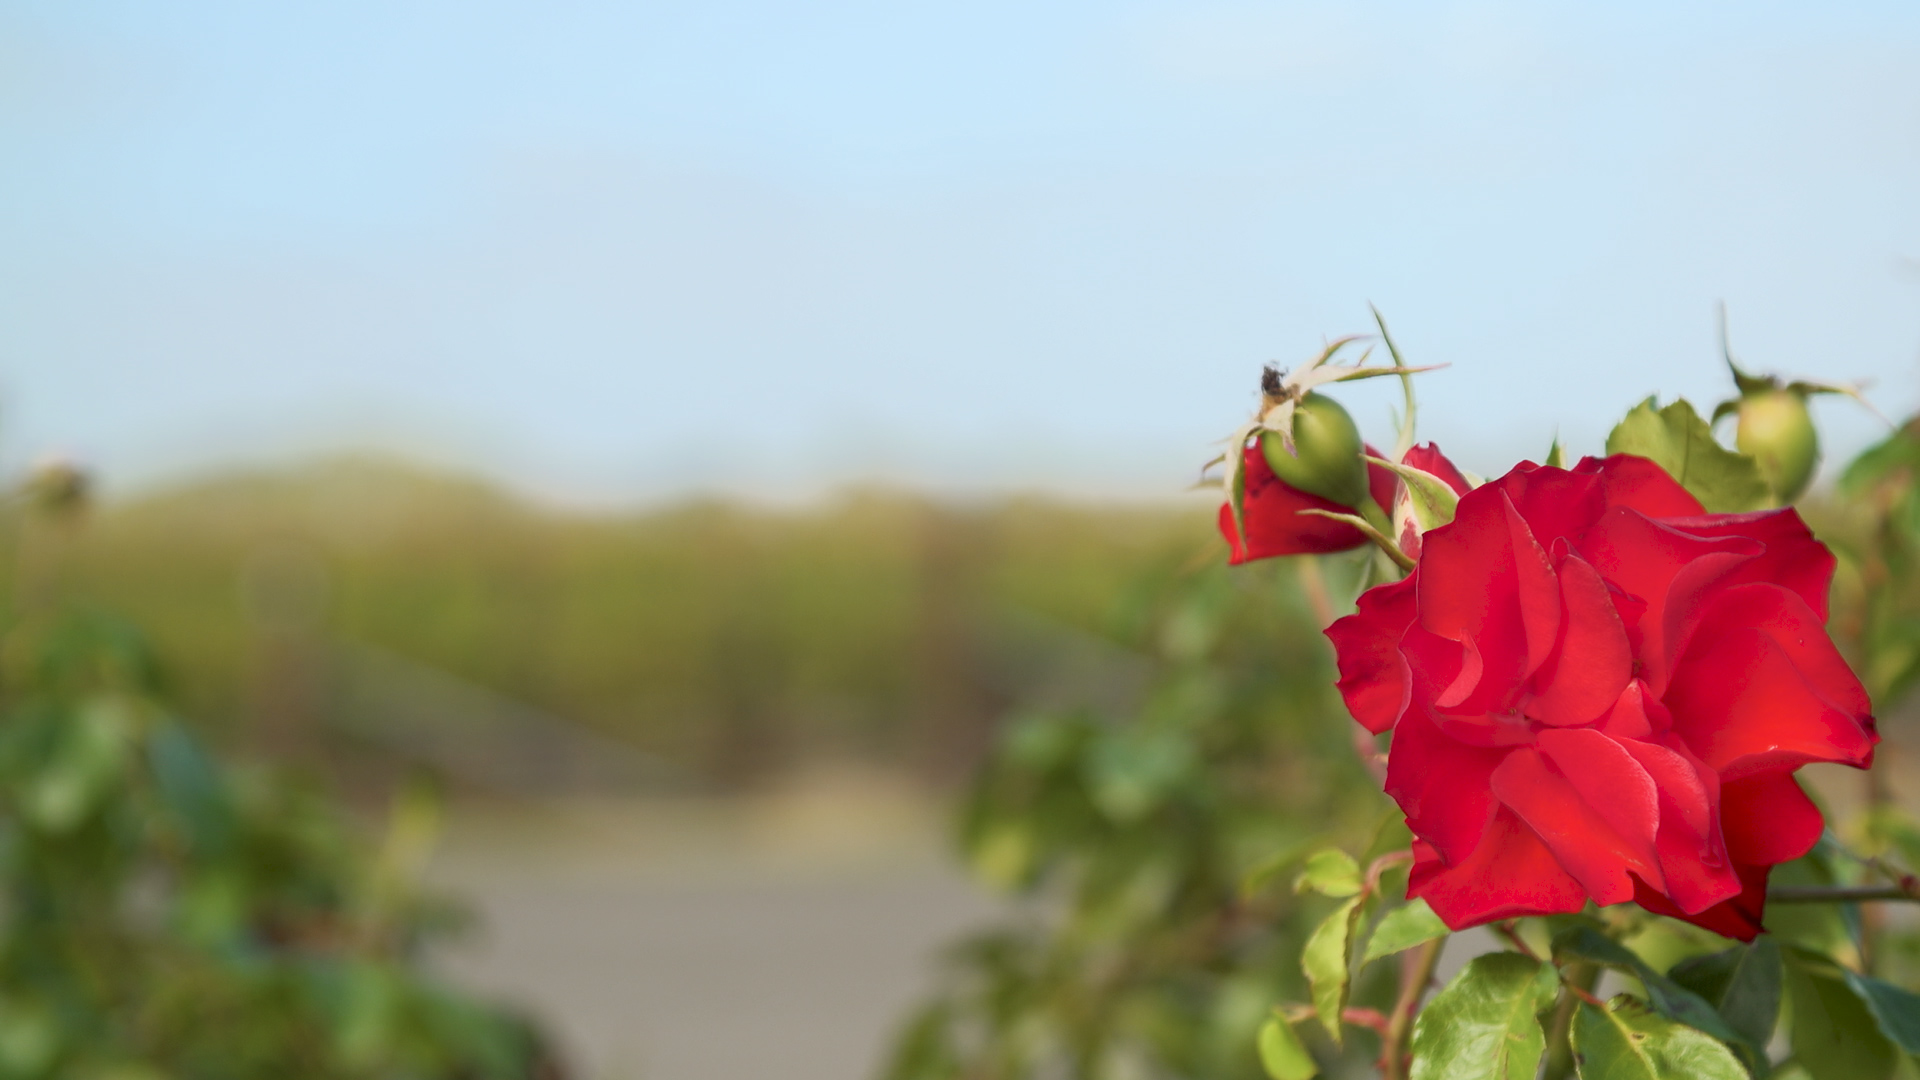 [HD] Grapevines in background shifting focus to red rose in foreground 1920x1080